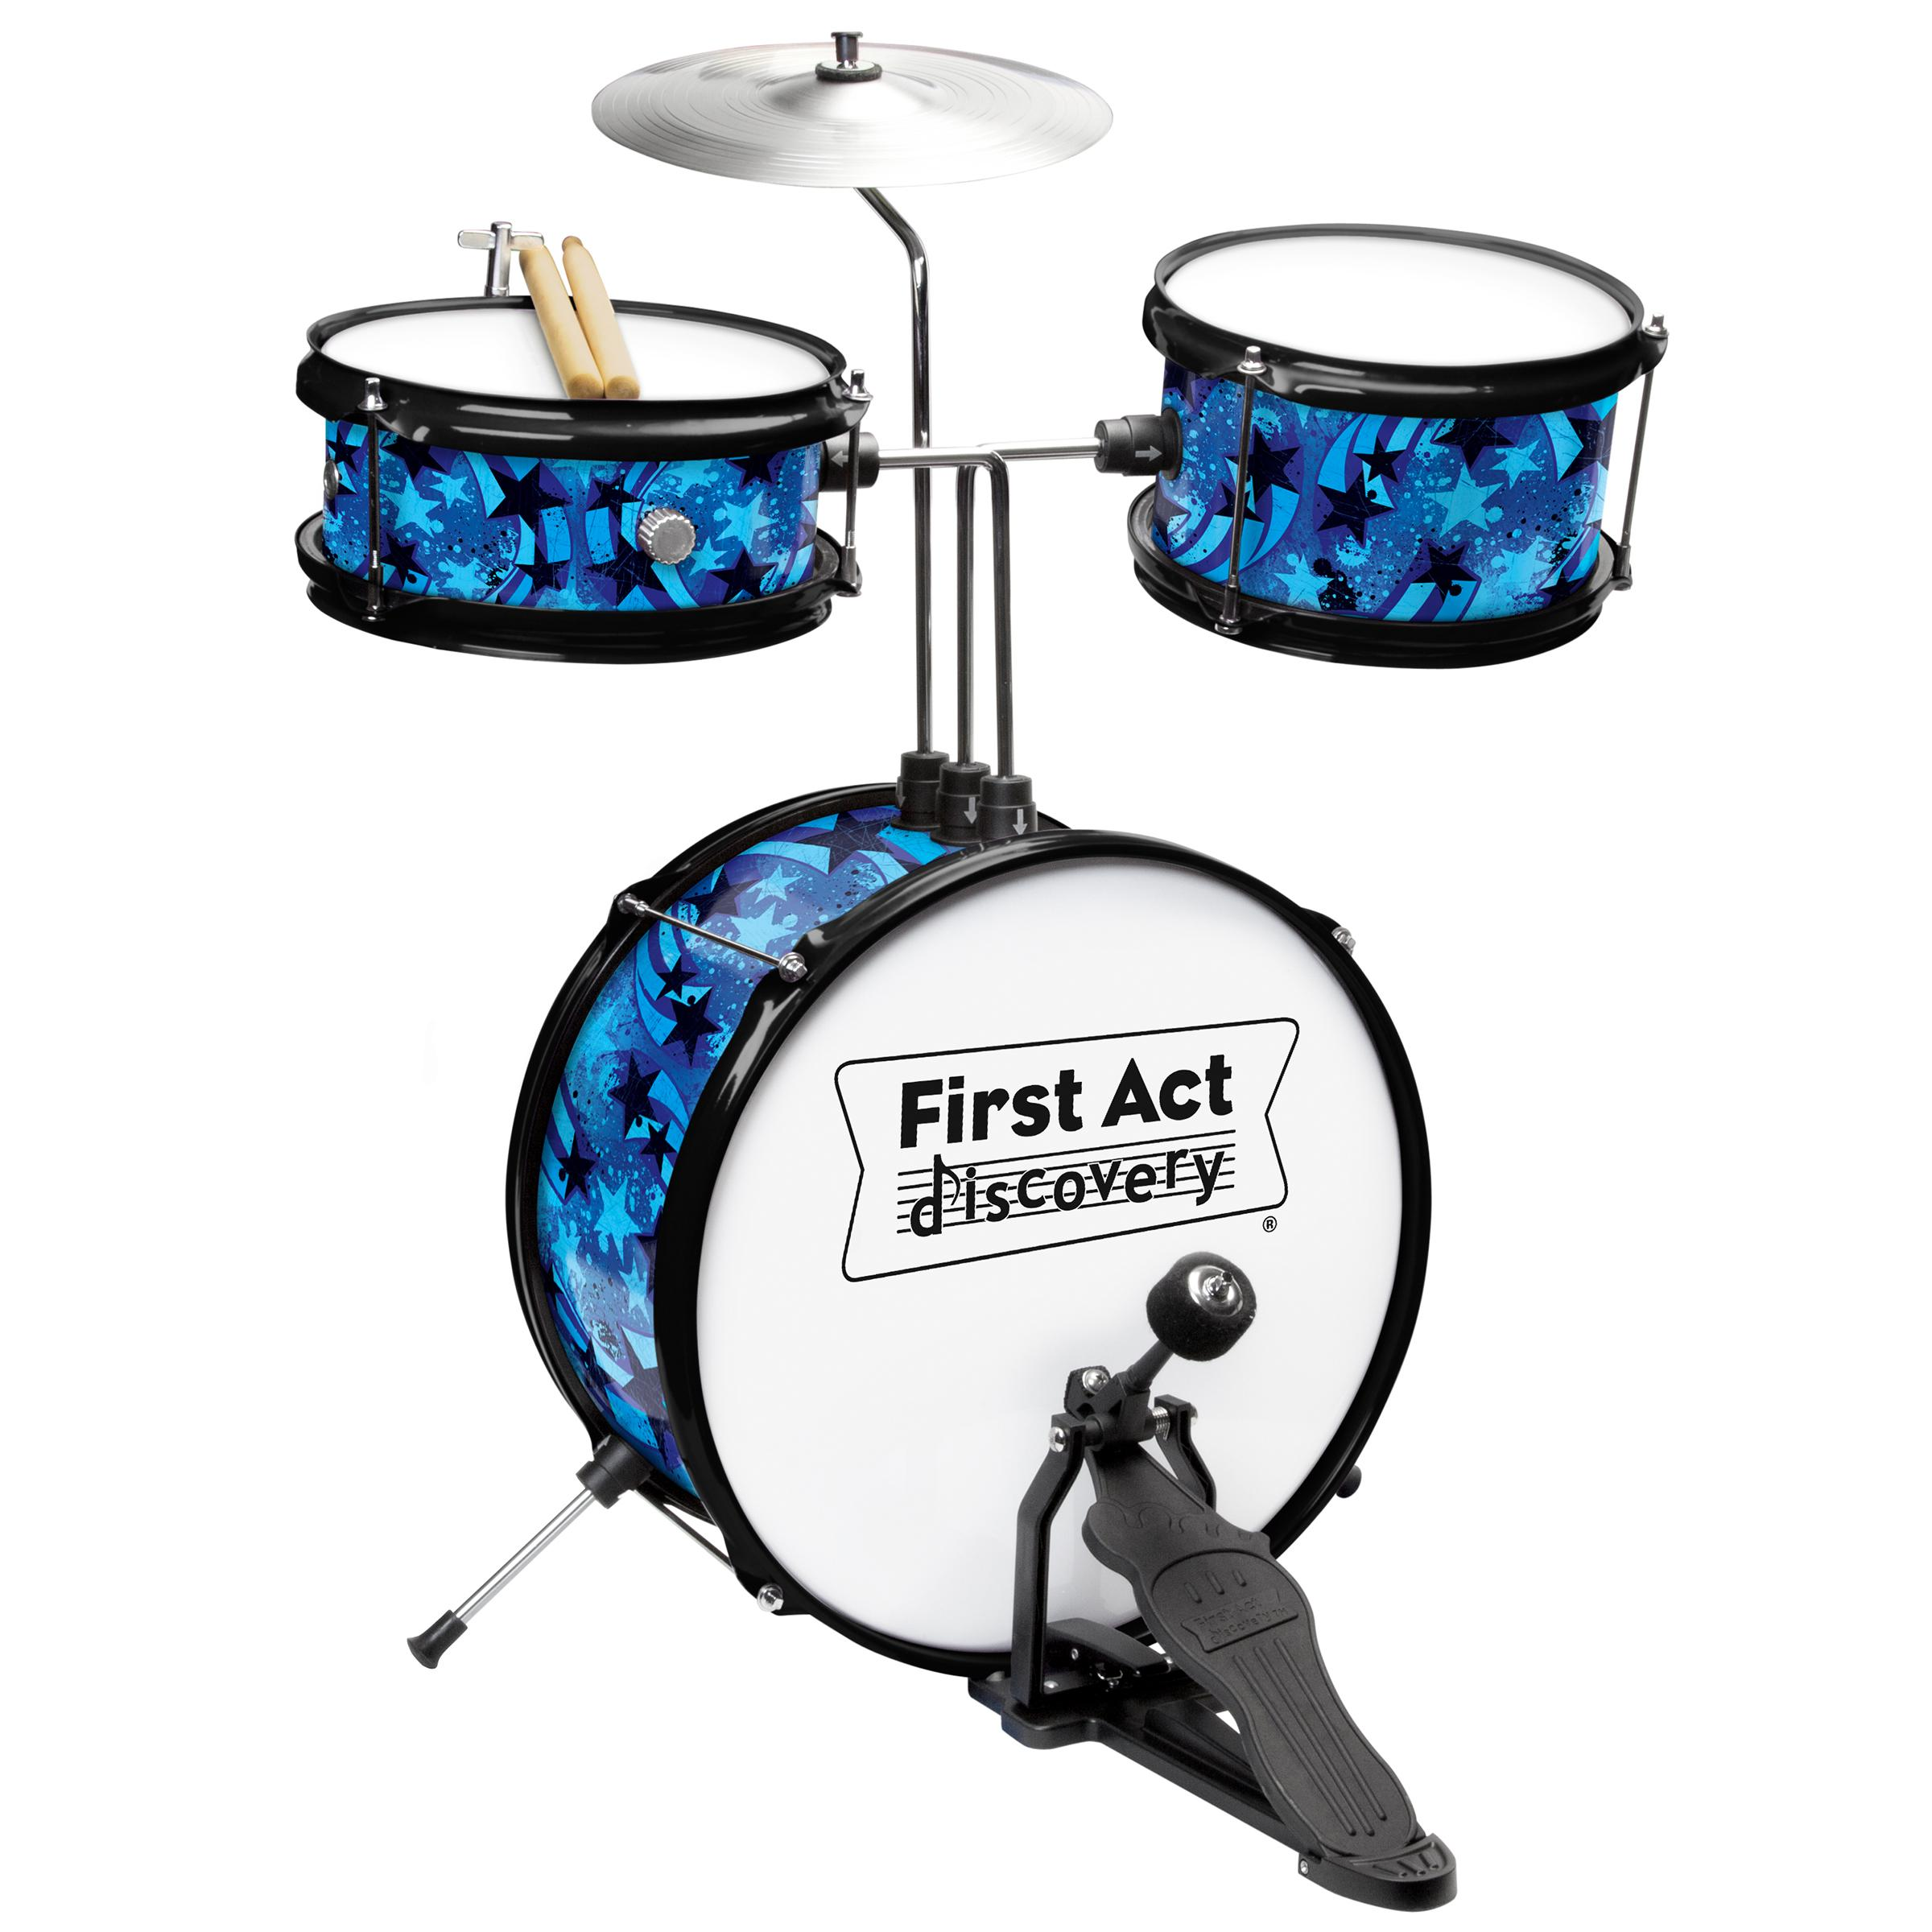 First Act Discovery Blue Swirls Stars Designer Drum Set Pin Snare Parts Diagram On Pinterest From The Manufacturer